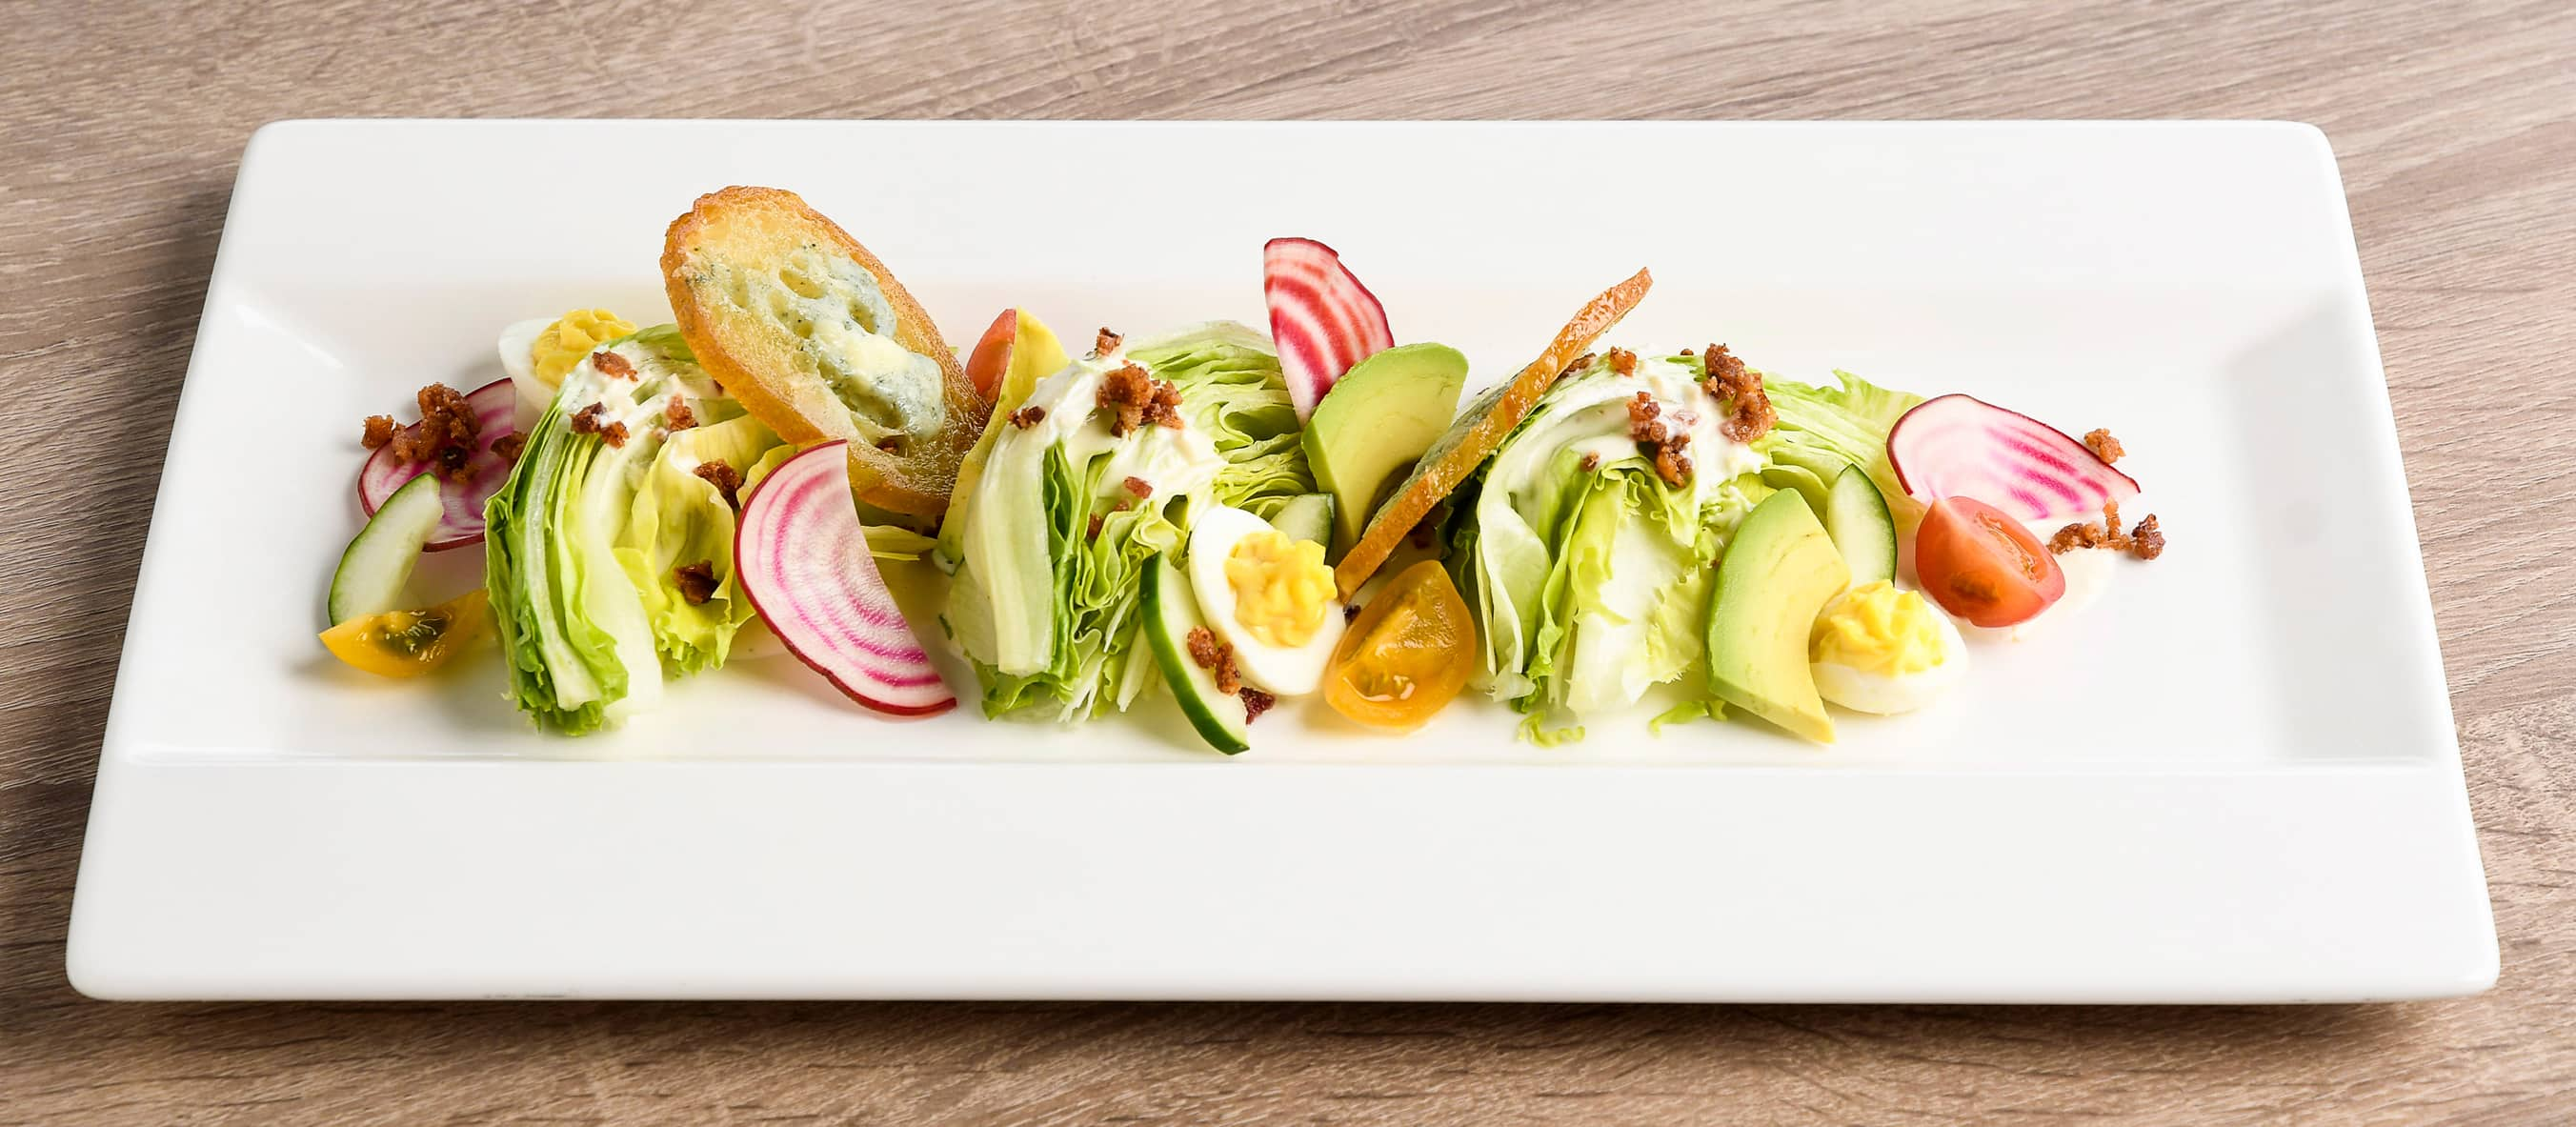 A rectangular plate containing a wedge salad with tomatoes, radish, eggs, avocado, bacon and bread crisps